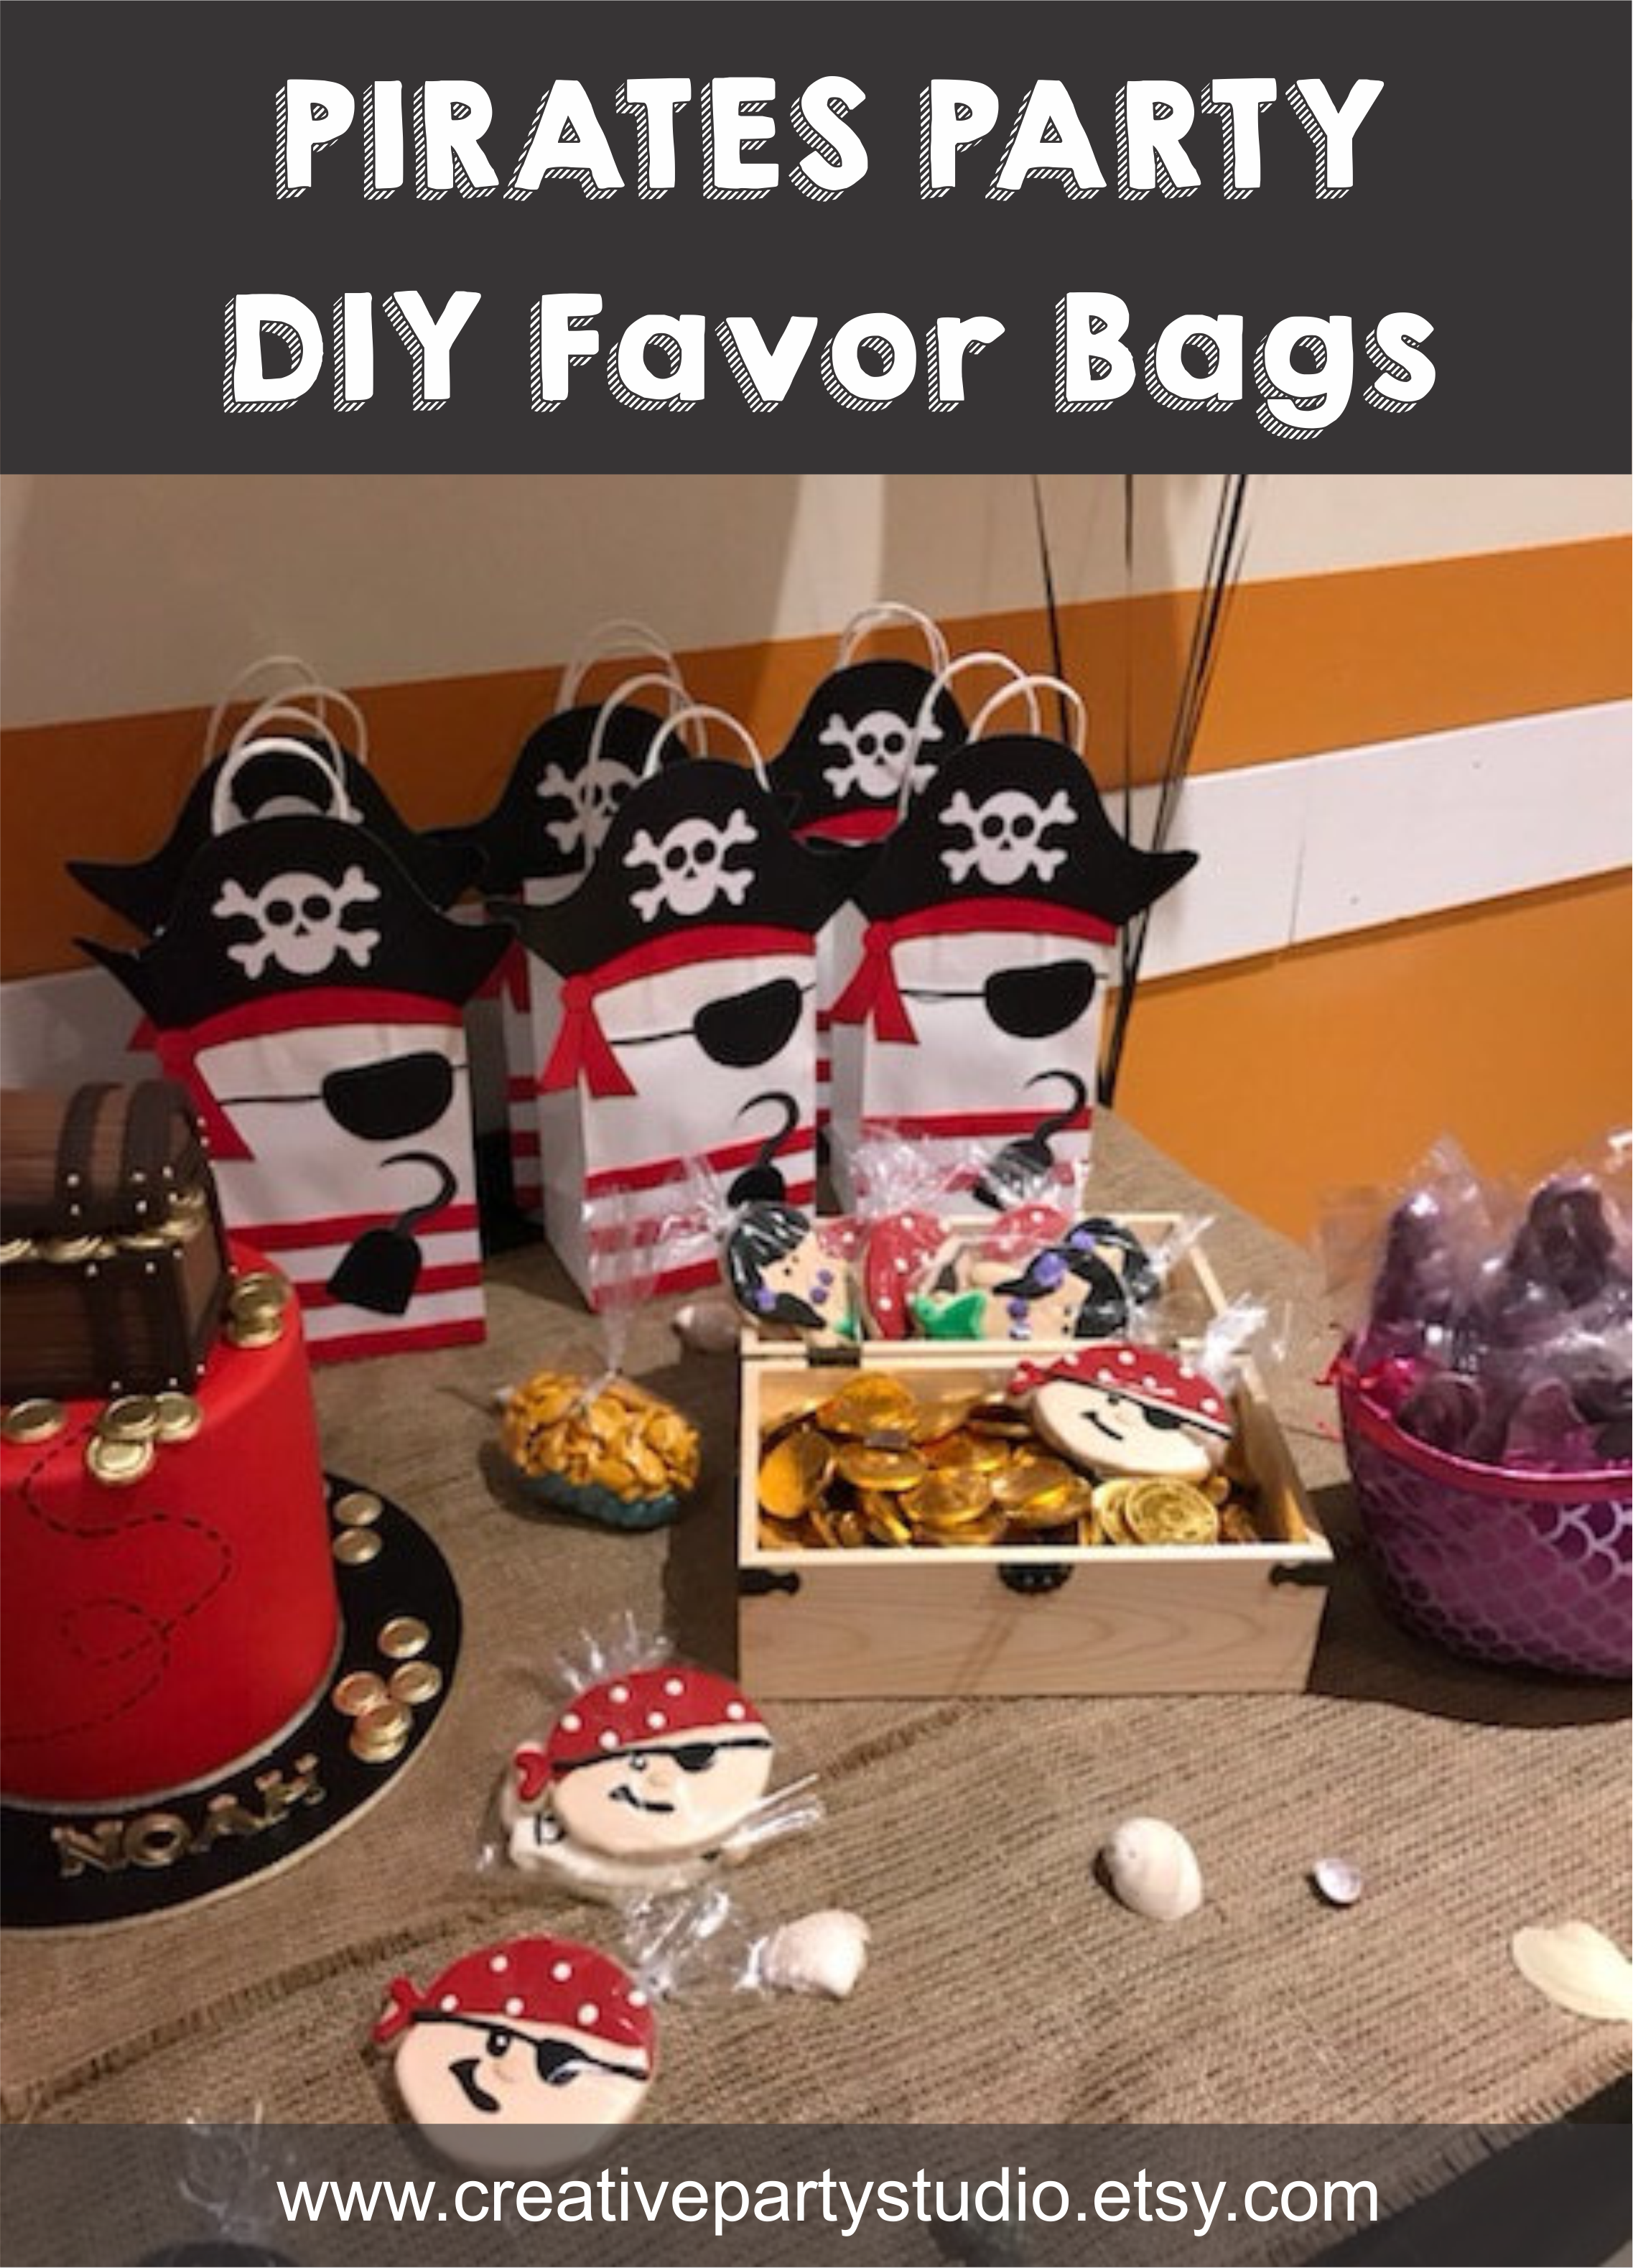 Pirates Birthday Theme Pirate Favor Bags Party Ideas Decoration Goo Favors